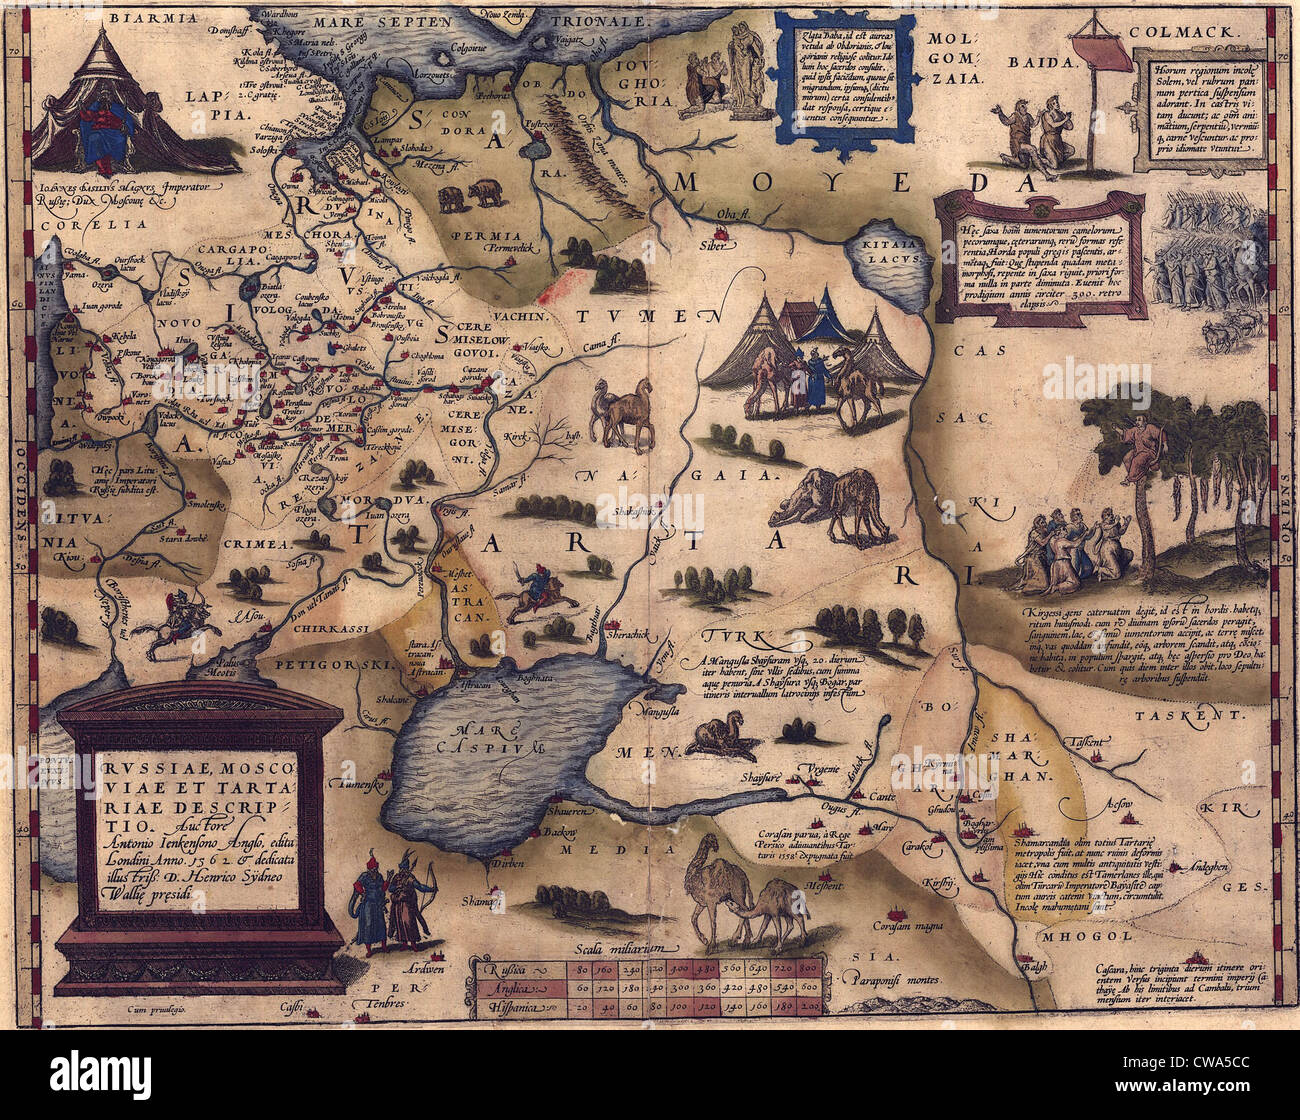 Map Of Asia In 500 Ad.1570 Map Of Russia Then Confined To Europe Without Access To The